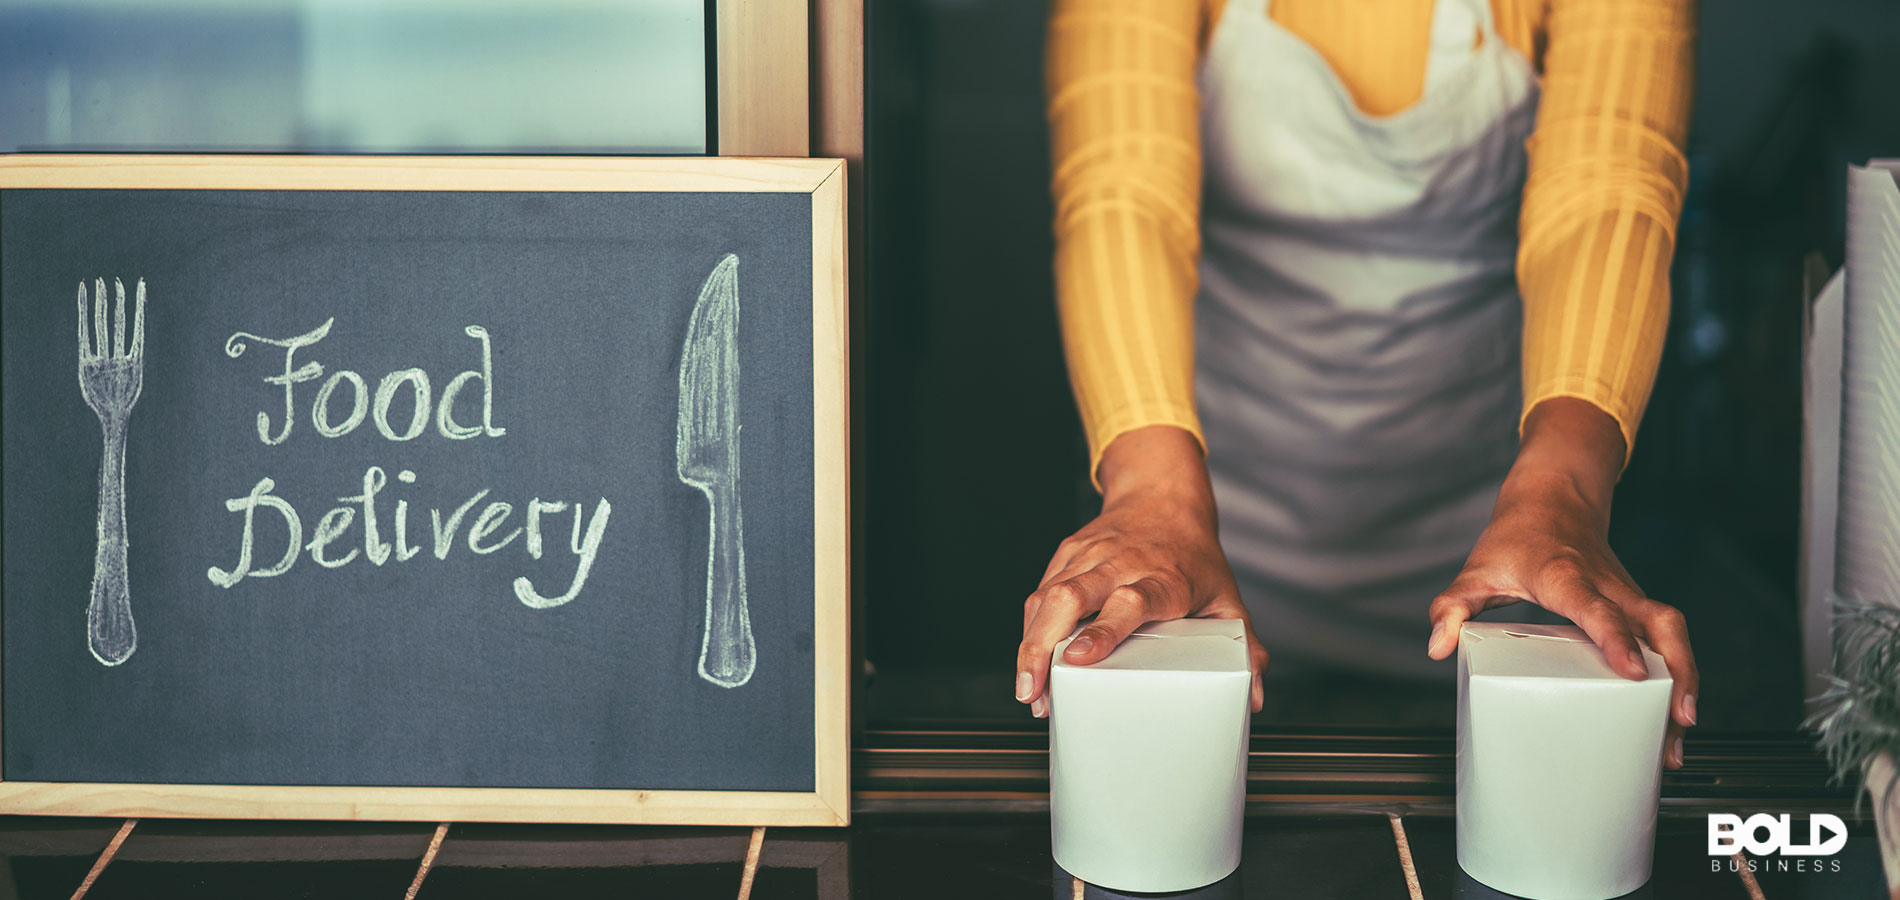 A ghost kitchen serving up delicious mystery food